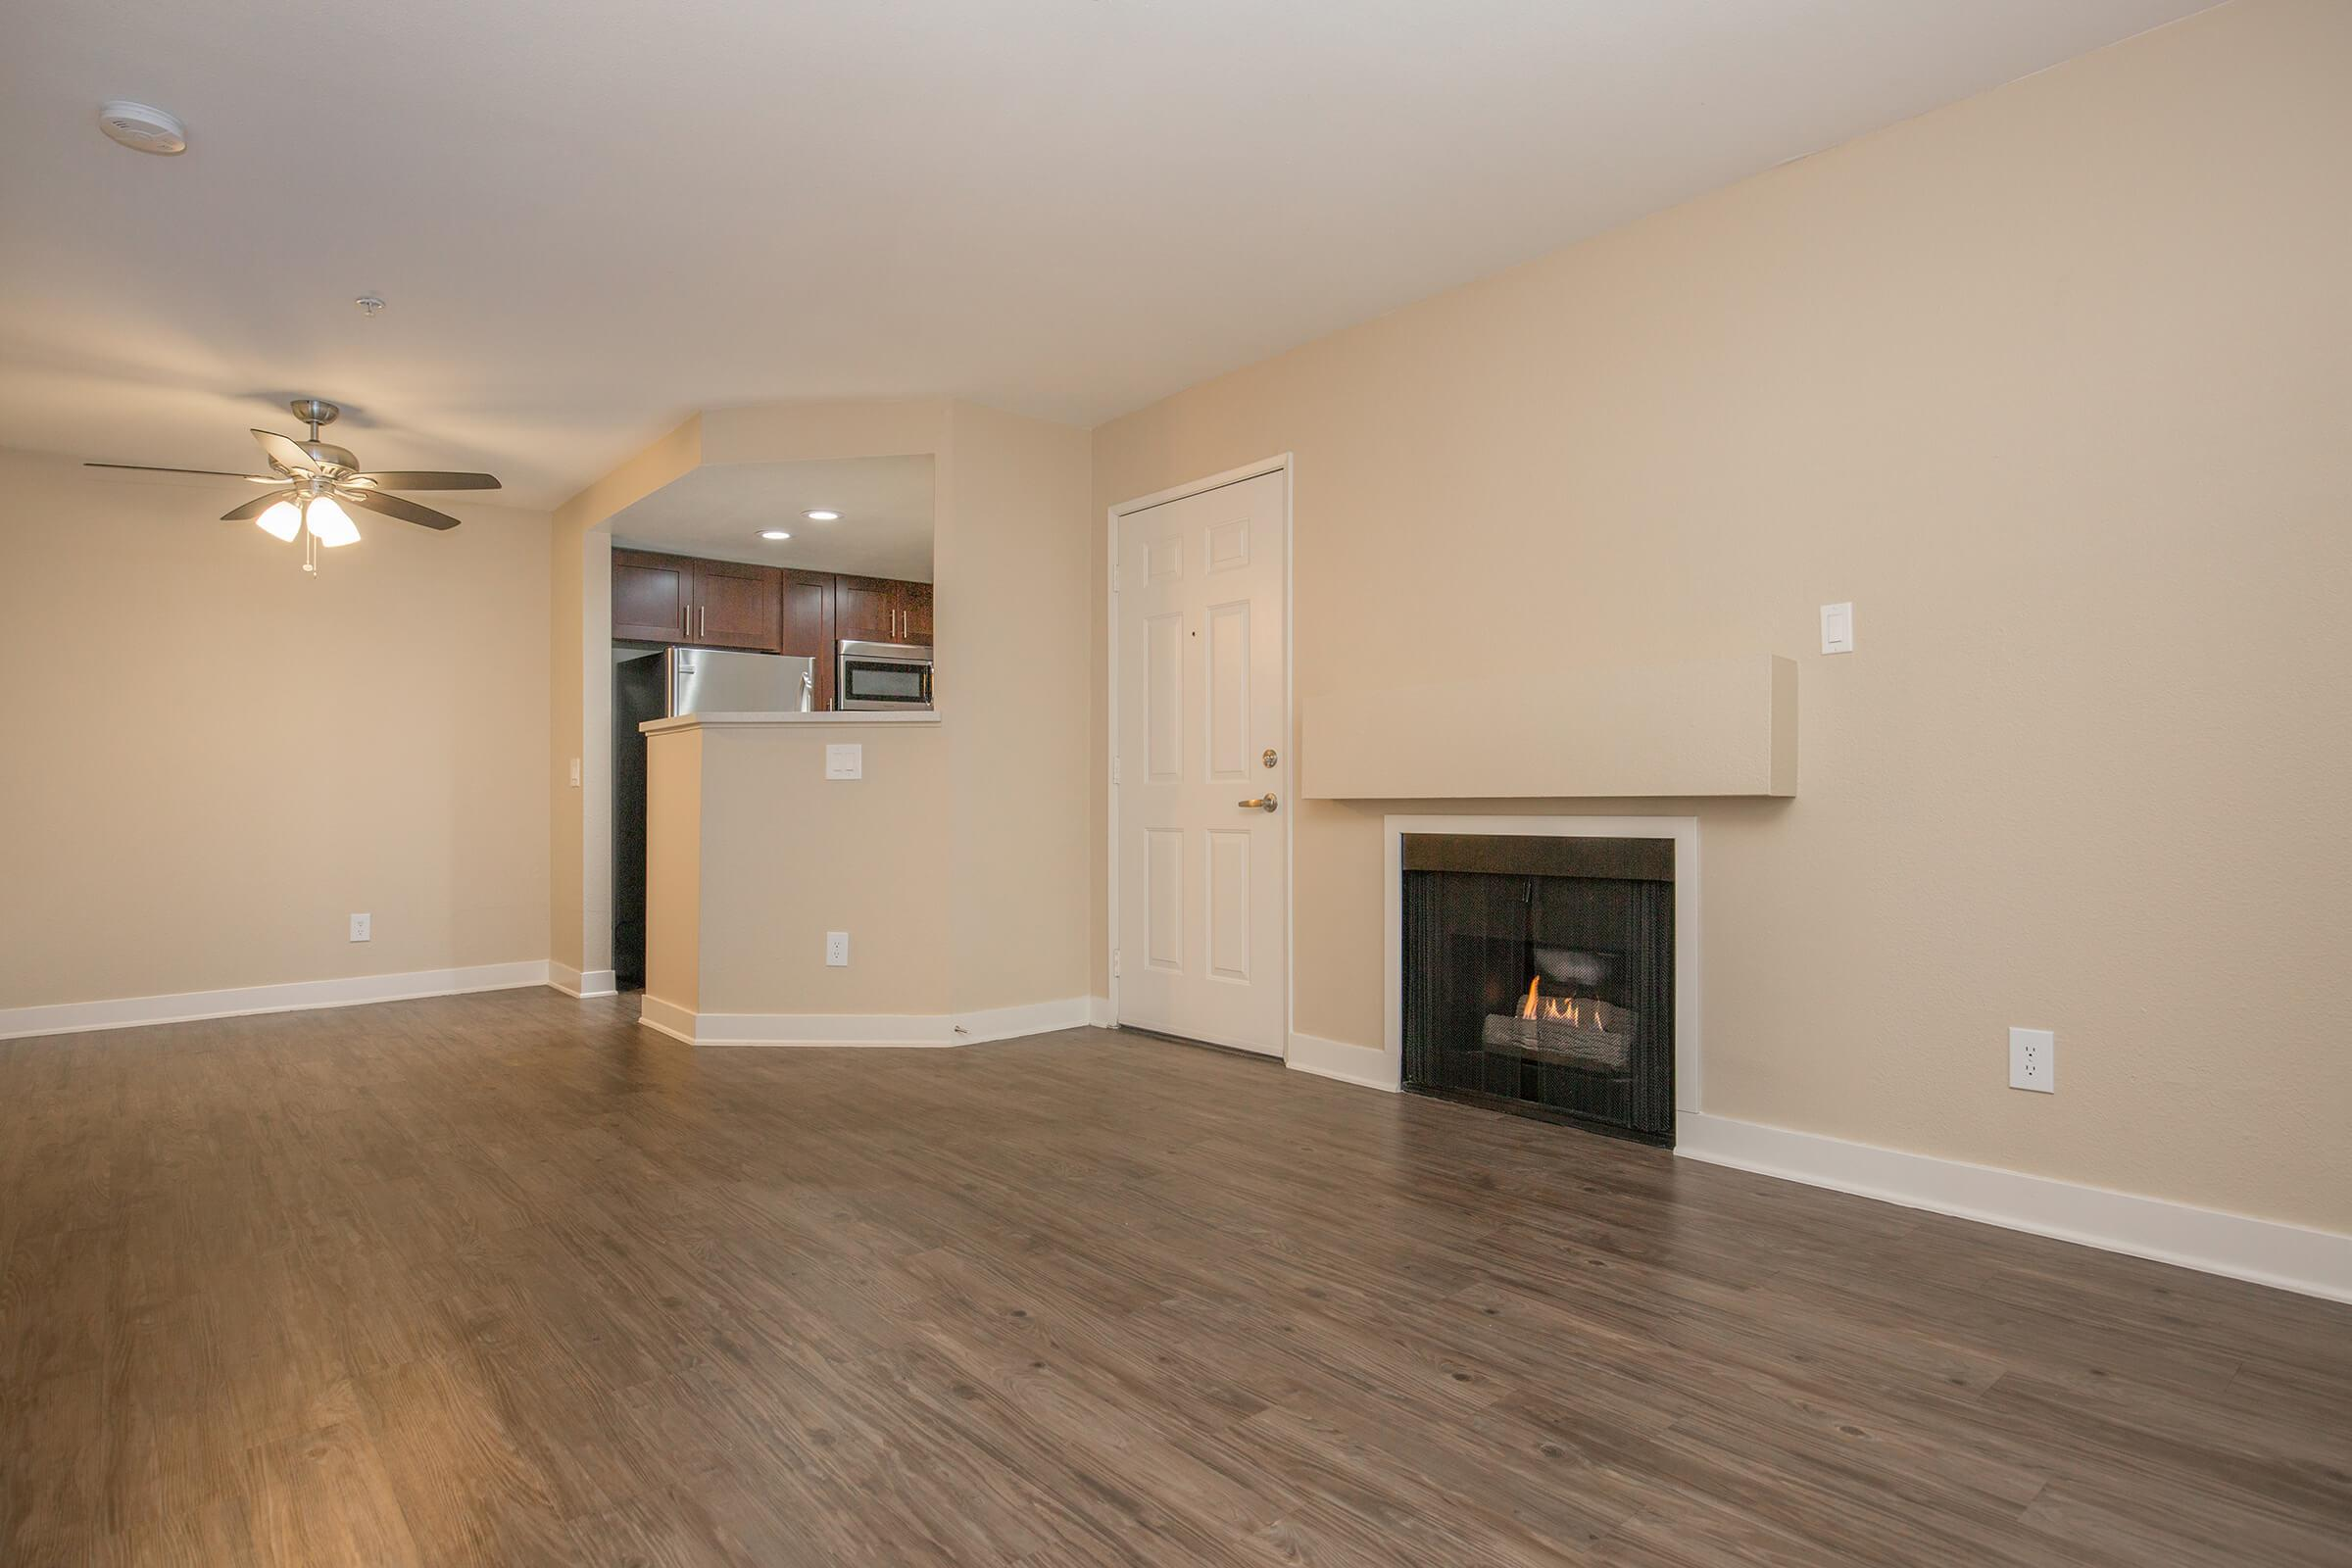 Vacant living room with fireplace